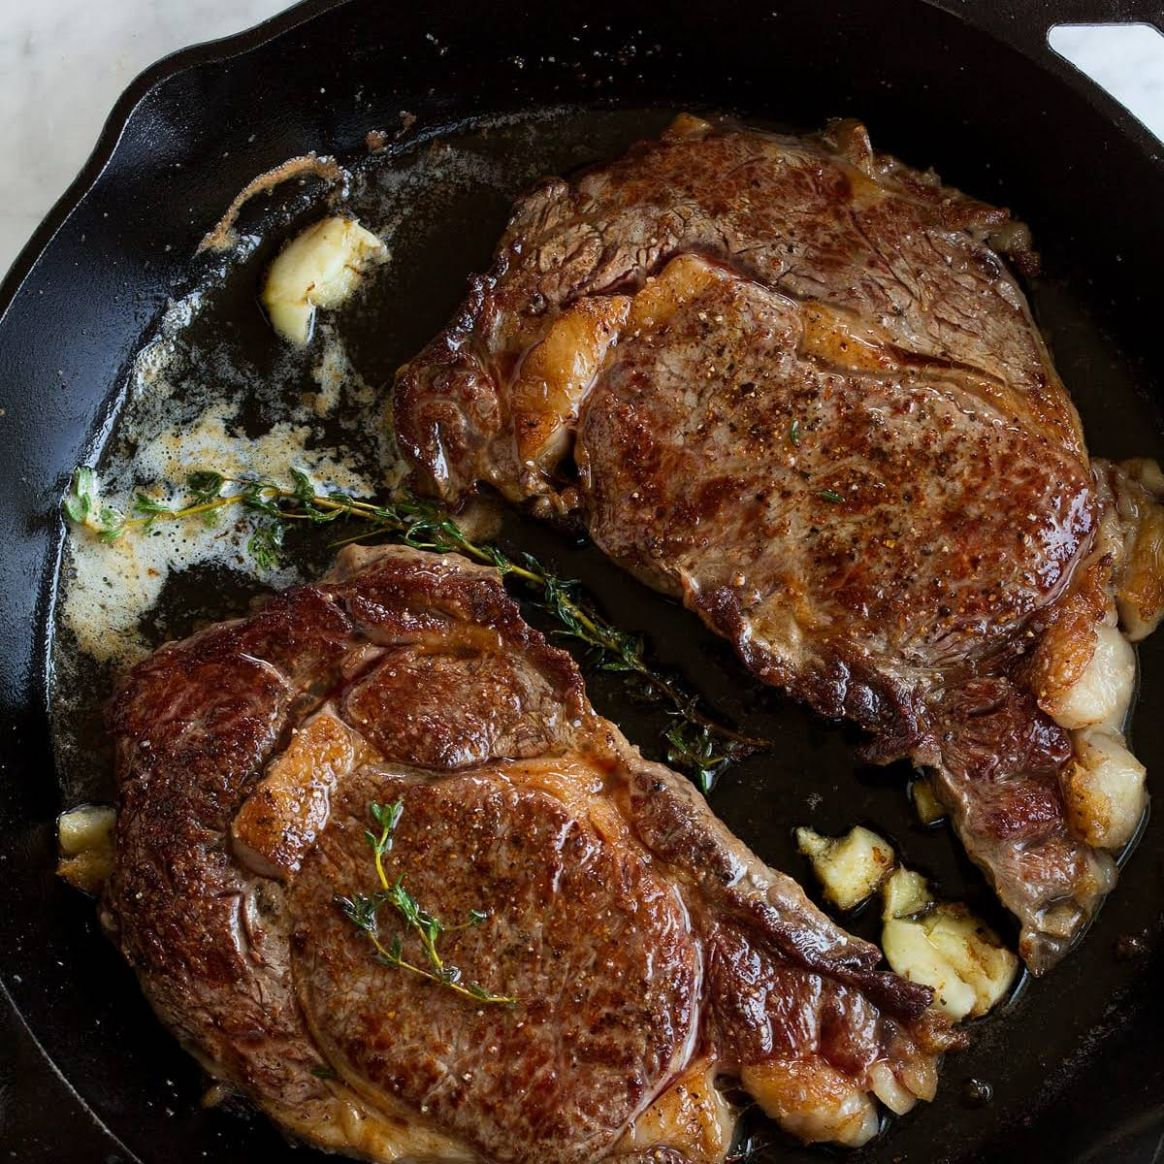 Pan Seared Steak with Garlic Butter Sauce - Recipes With Beef Strips